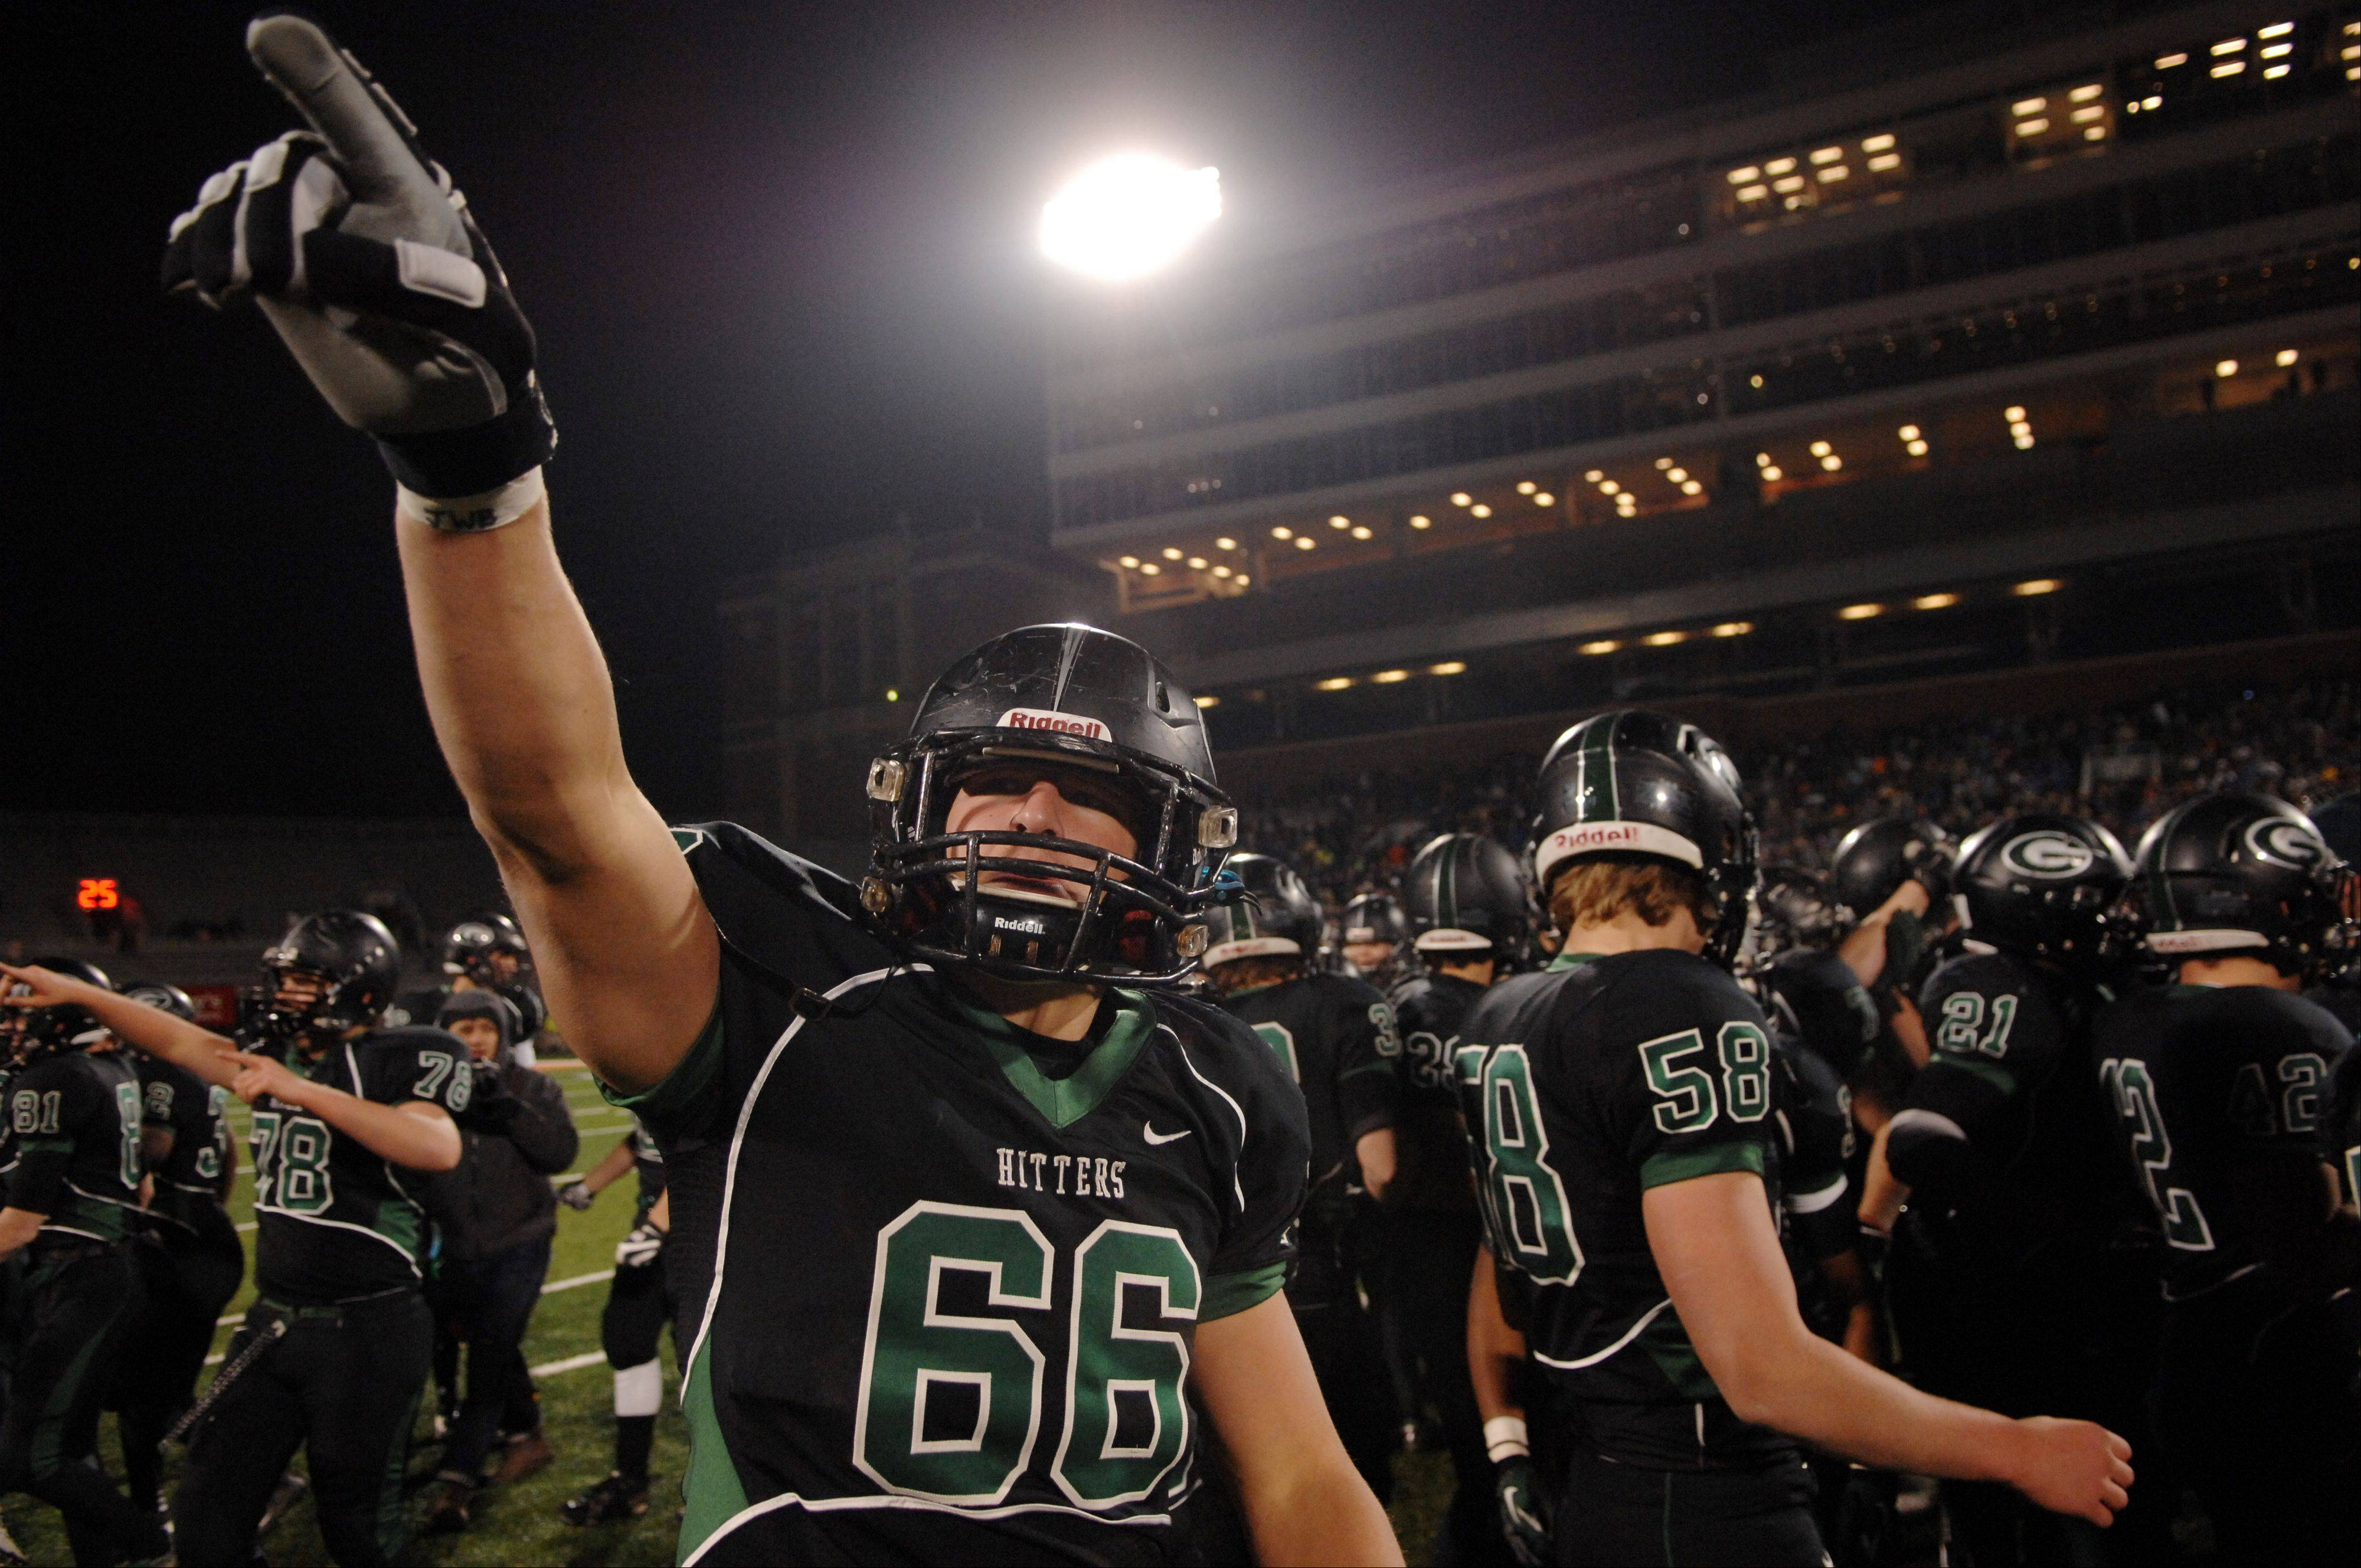 Glenbard West offensive linesman Max Bruere (66) salutes the crowd as he and the Hilltoppers celebrate their win over Lincoln-Way East during Saturday's Class 7A state title game at Memorial Stadium in Champaign.